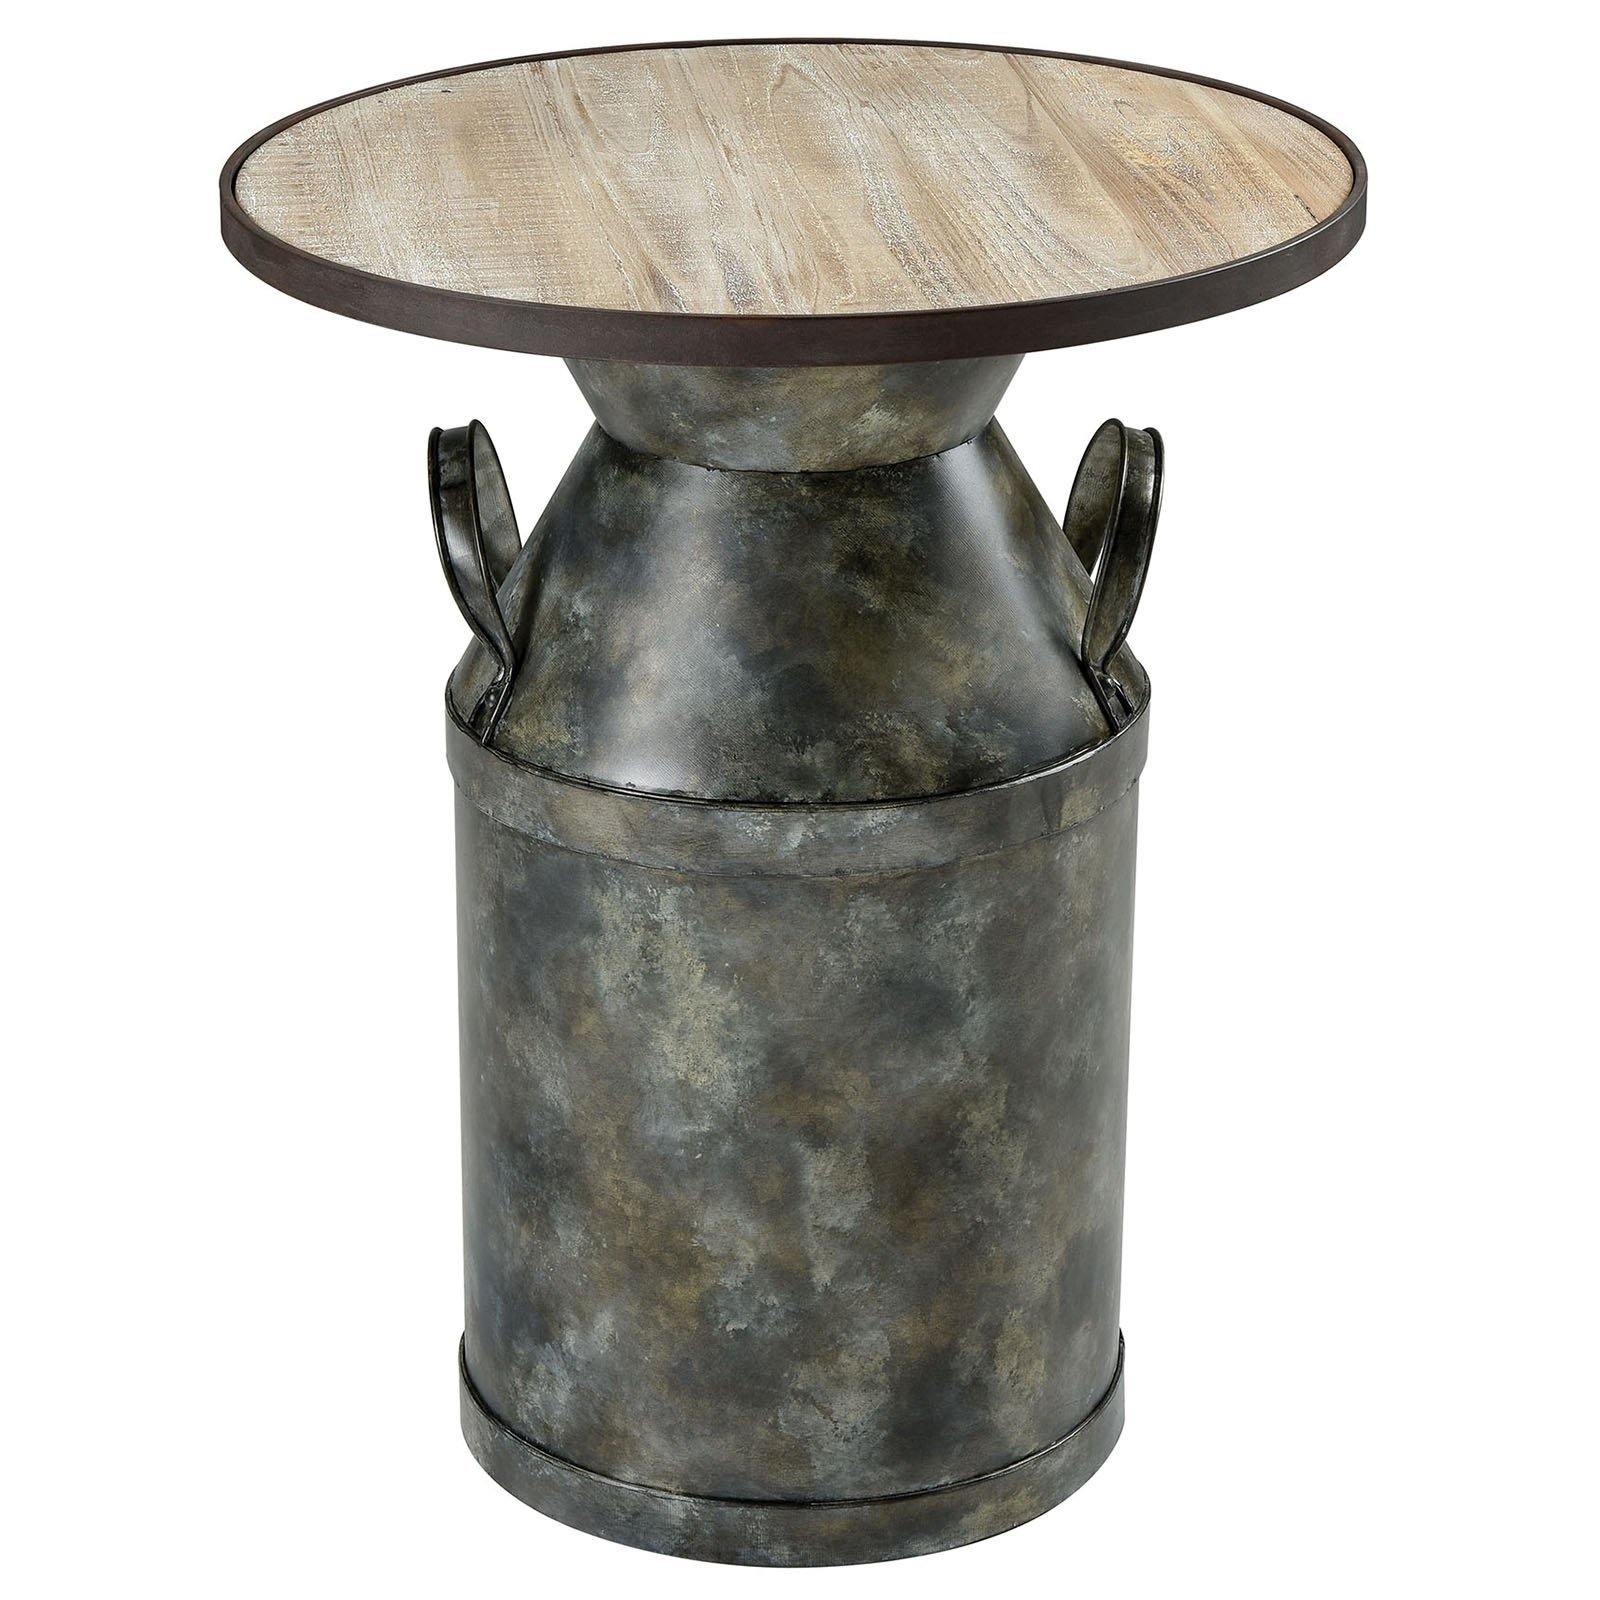 spacious skies farmhouse accent tables antique black fratantoni table lifestyles wine stoppers target vanity furniture west elm emmerson tiffany pond lily lamp decoration ideas